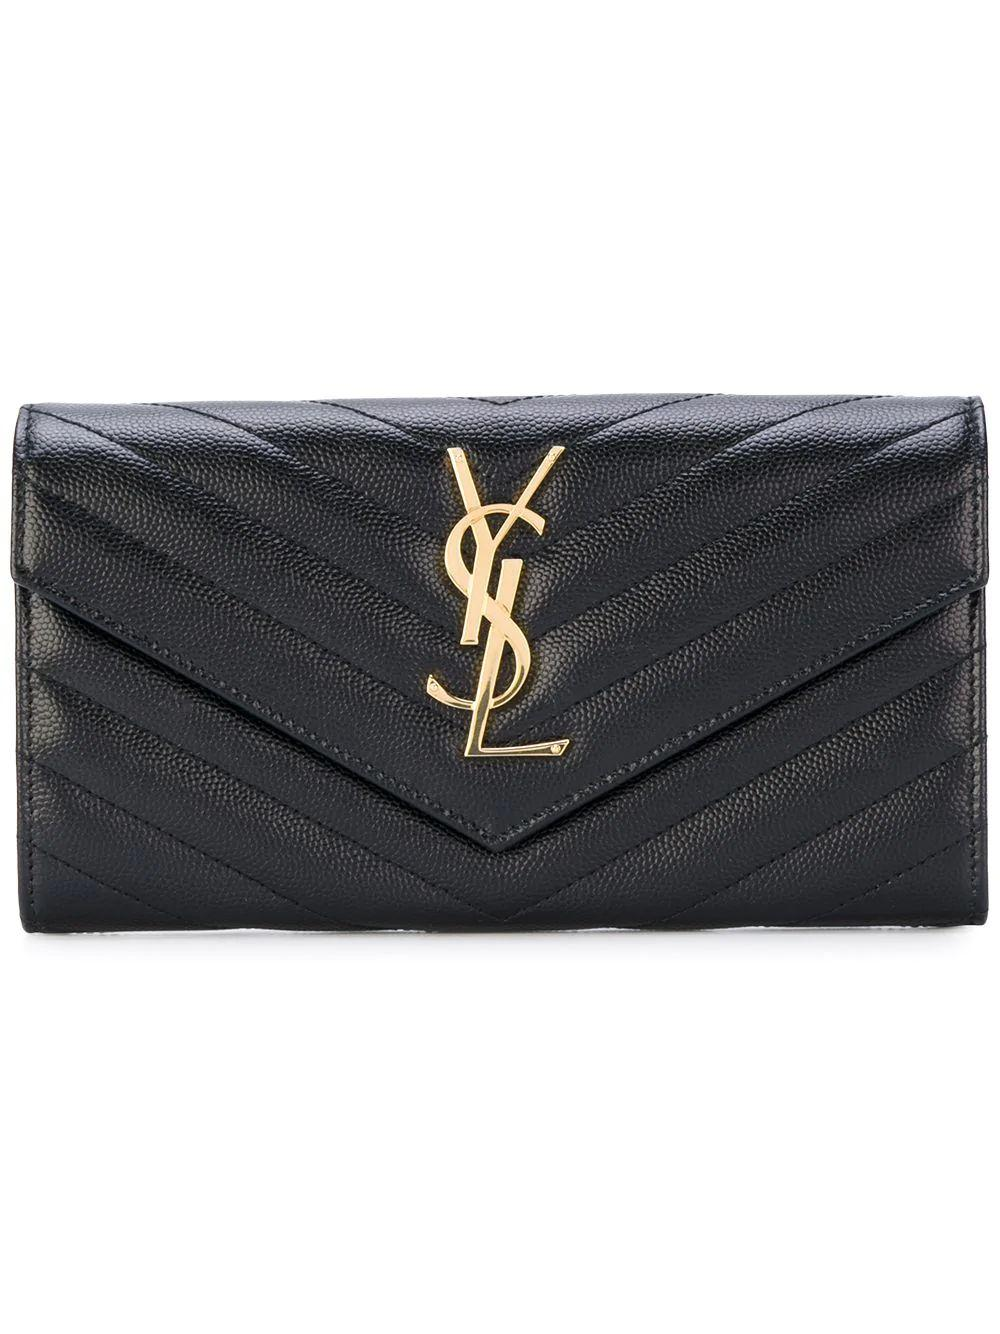 Large Monogram Wallet Item # 372264BOW01-S21